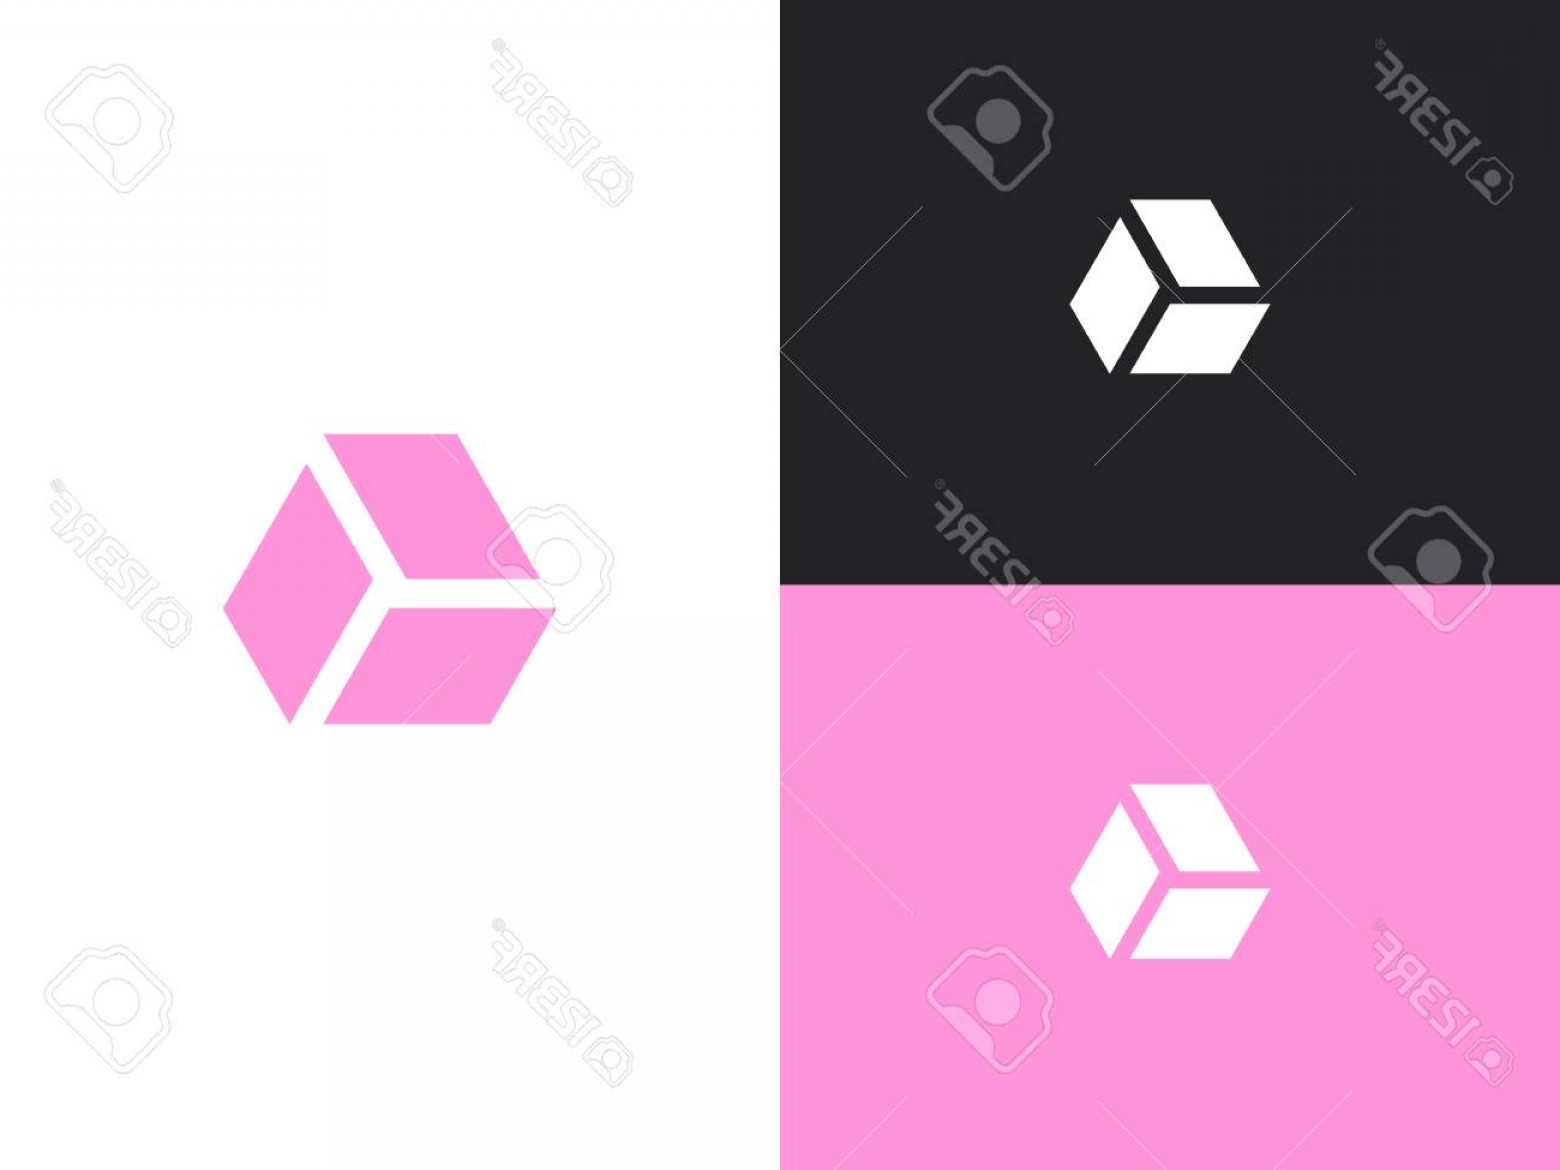 Simple Vector Logo: Photostock Vector Simple Vector Logo Design Template Pink Icon For Infographic Website Or App Isolated On Black And Wh